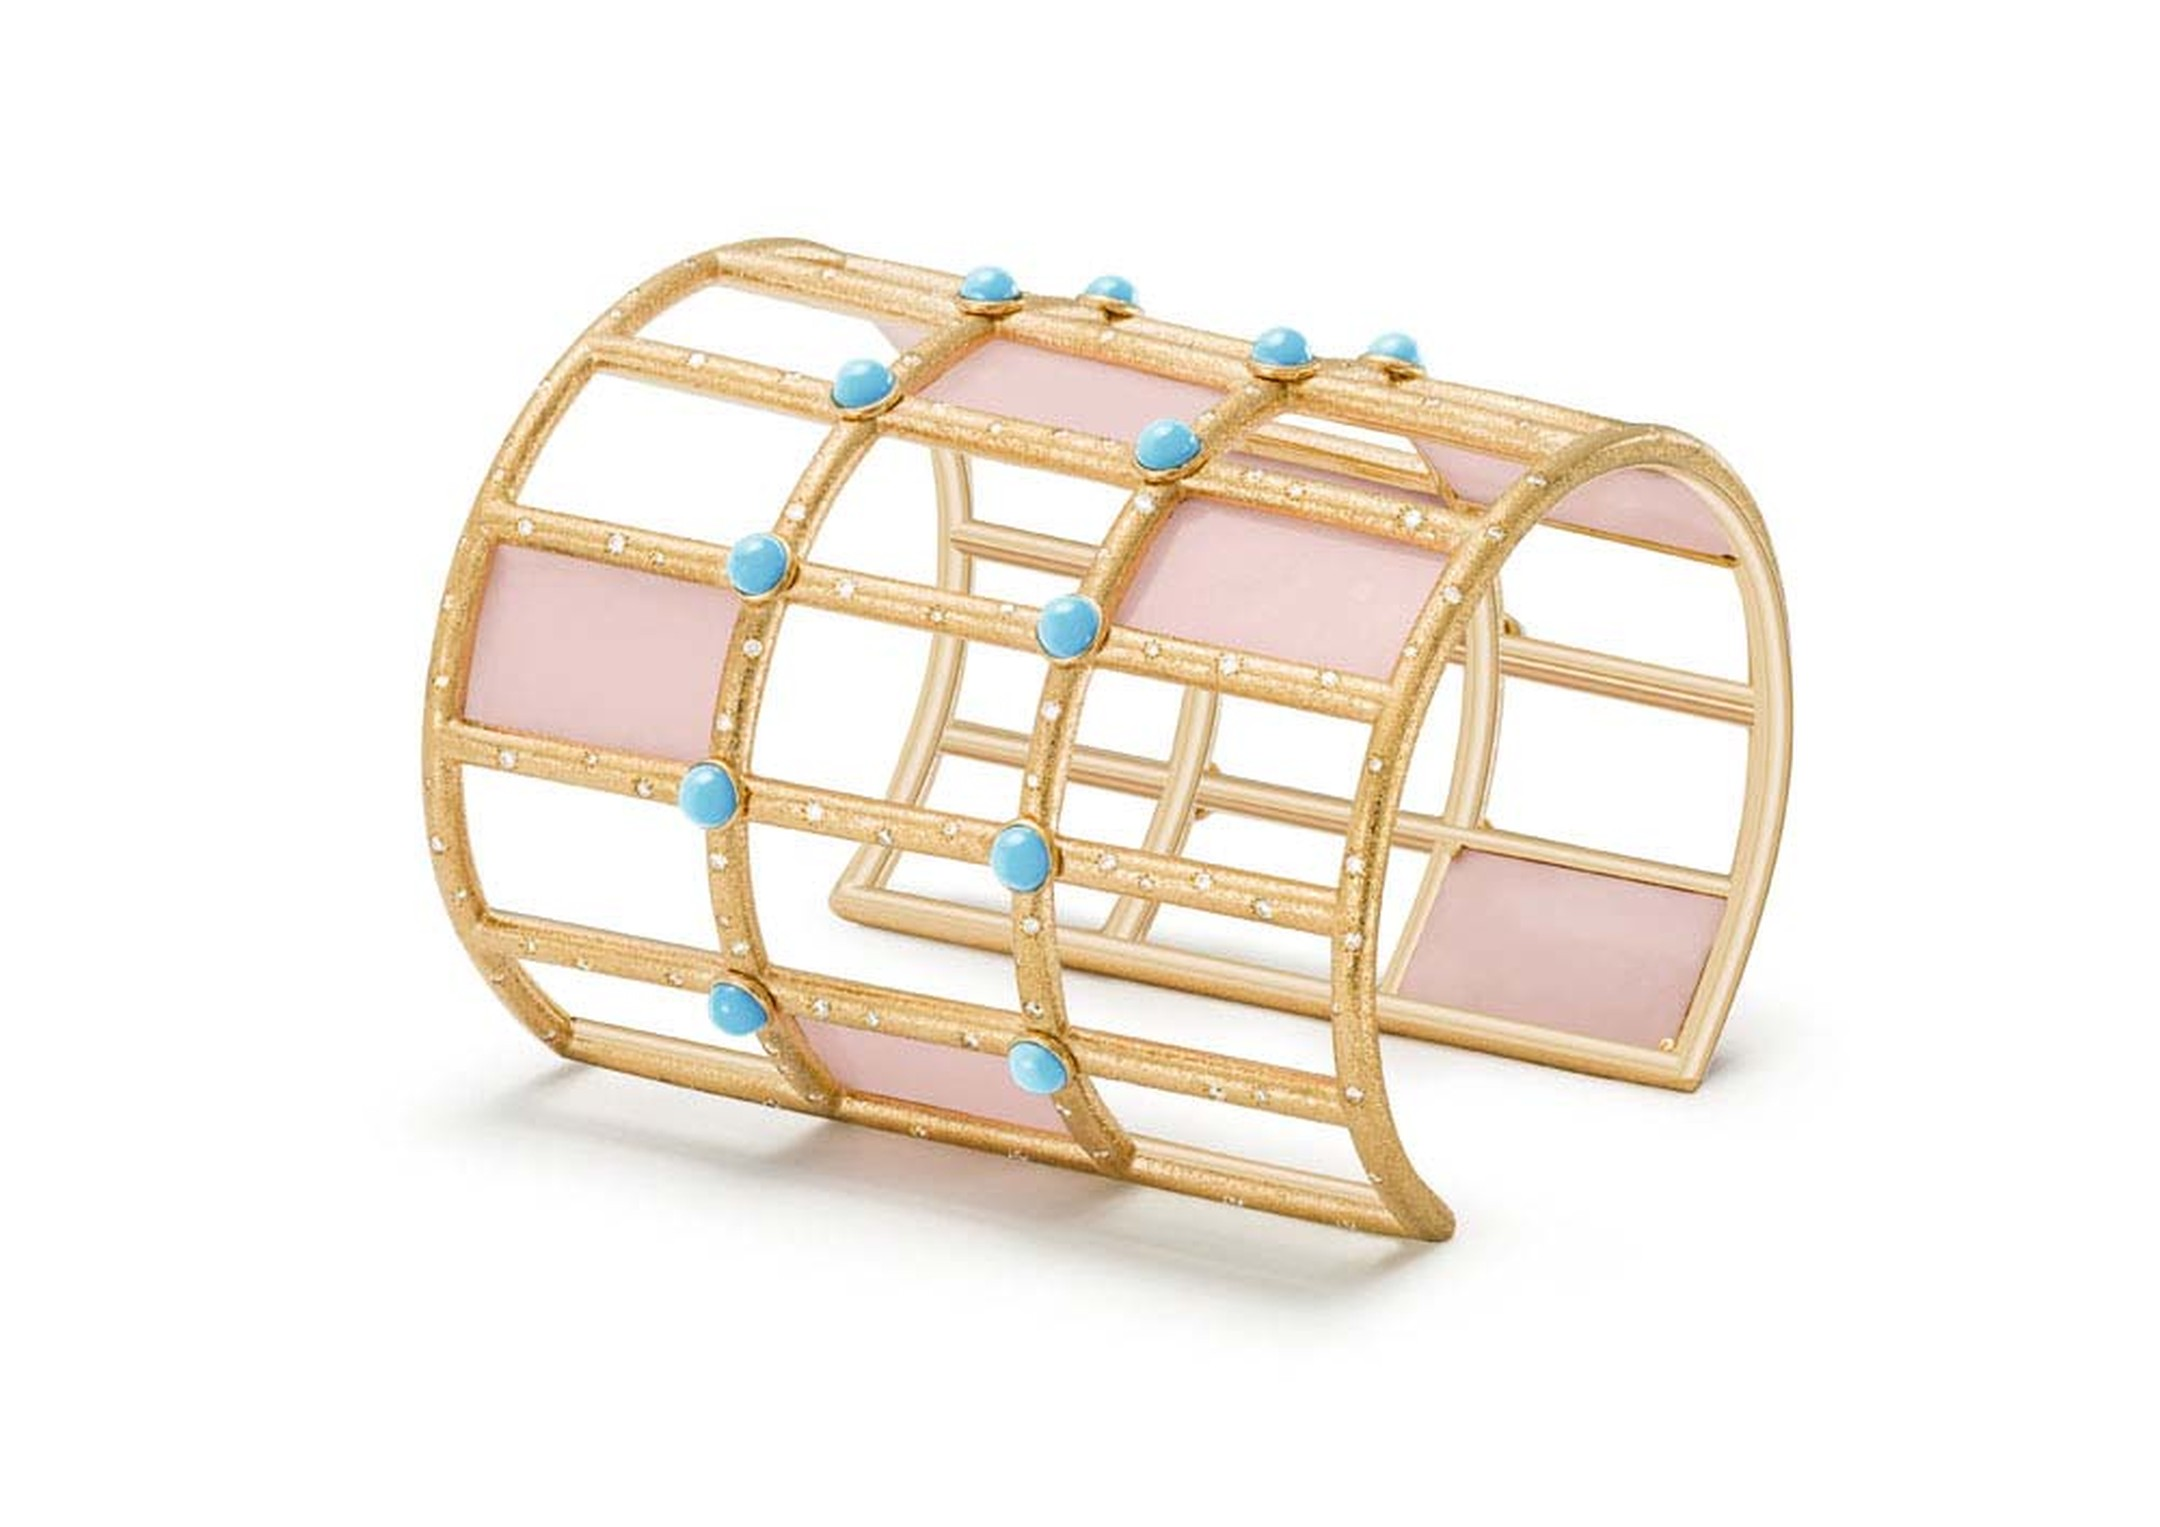 Extremely Piaget cuff bracelet in pink gold set with pink opal plates, turquoise beads and brilliant-cut diamonds.